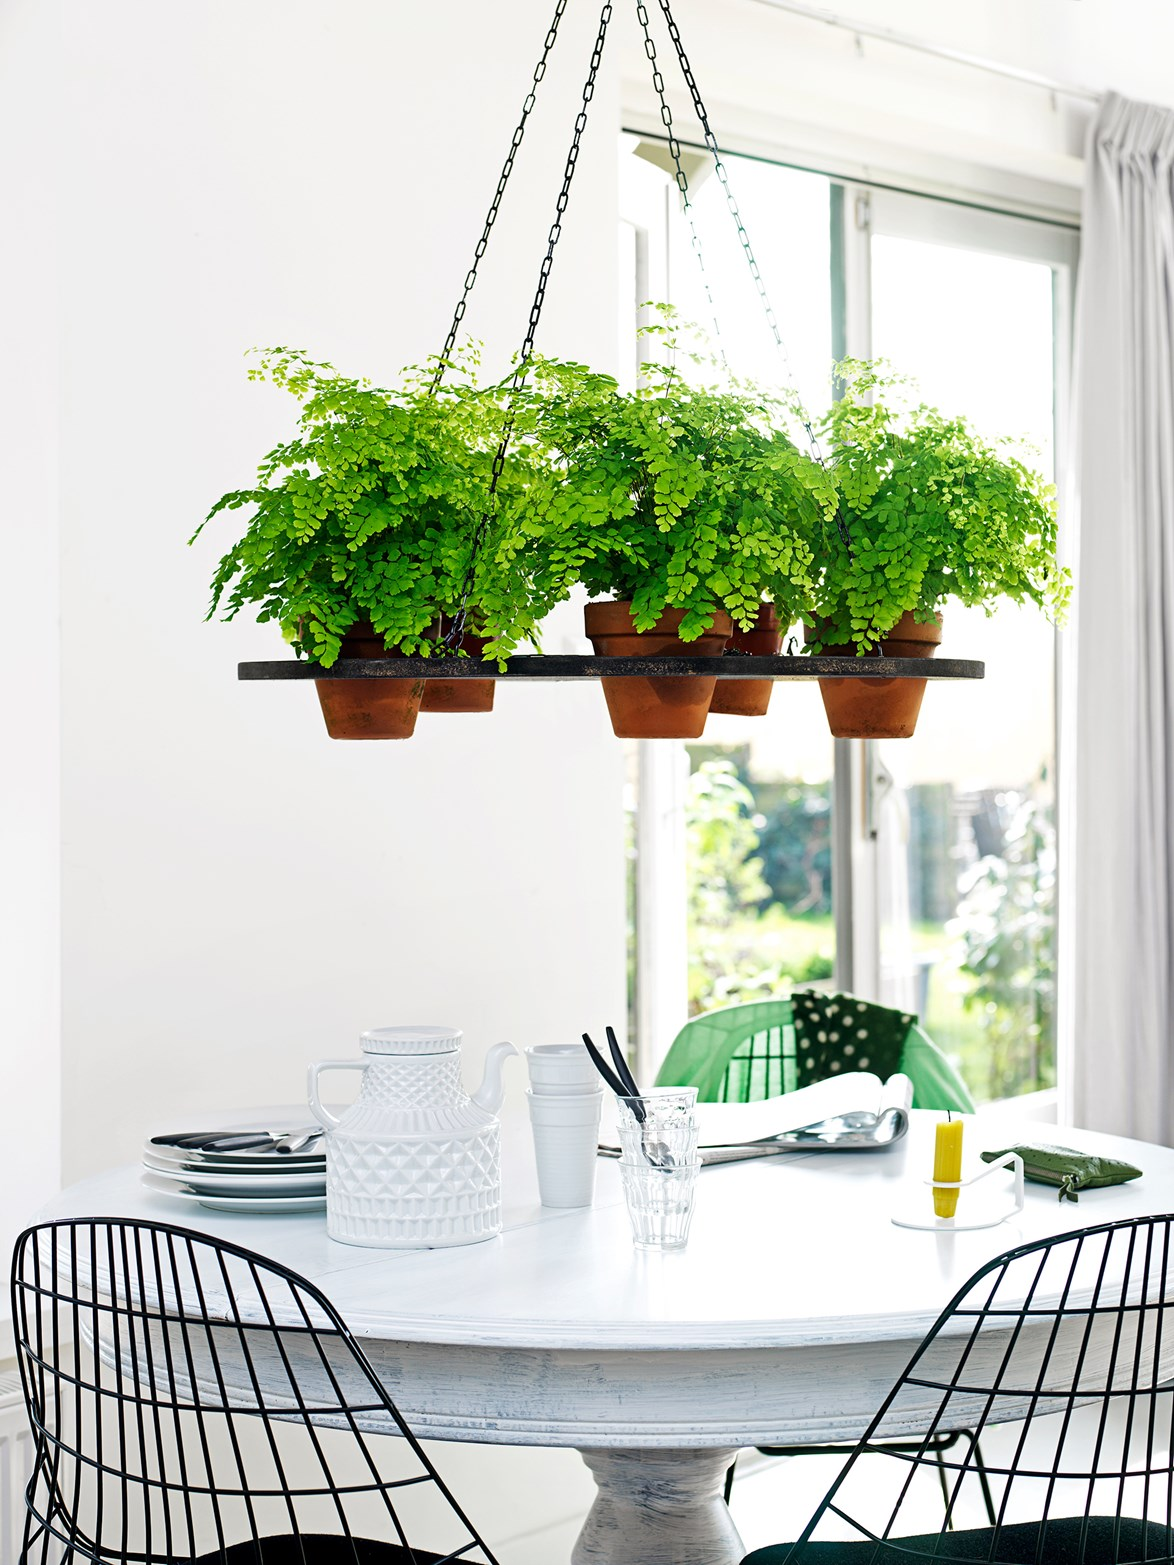 A hanging plant display brings life to this small dining space.